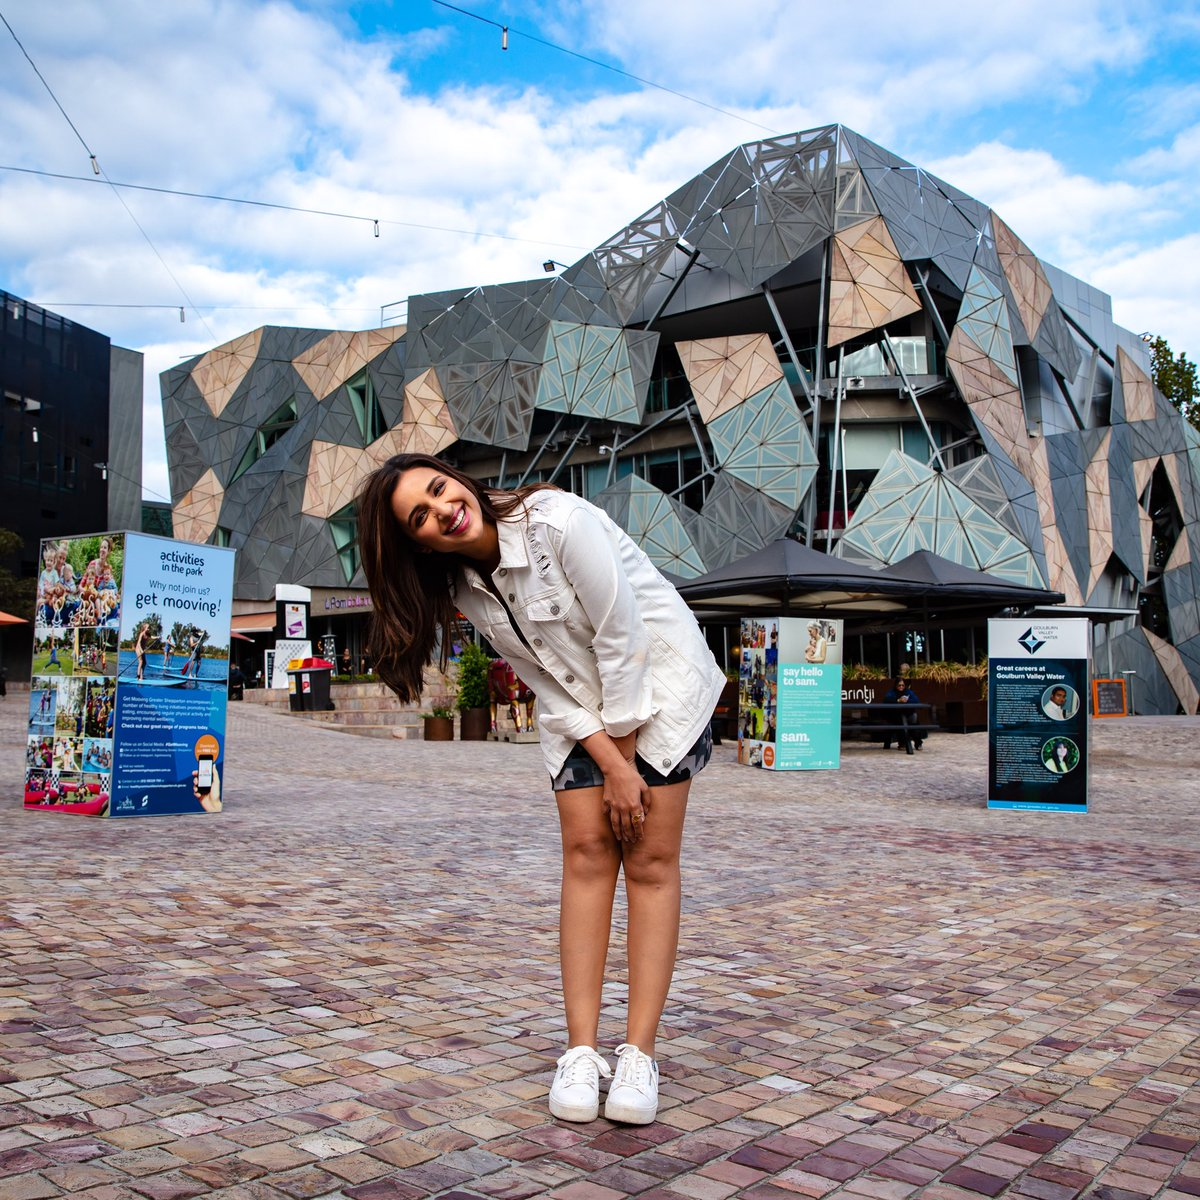 This has to be my favourite spot in Melbourne. Absolutely in love ❤️ with Federation Square's art and cultural vibe and the bars and restaurants here. @Melbourne_in @Australia @tiltshiftcrew